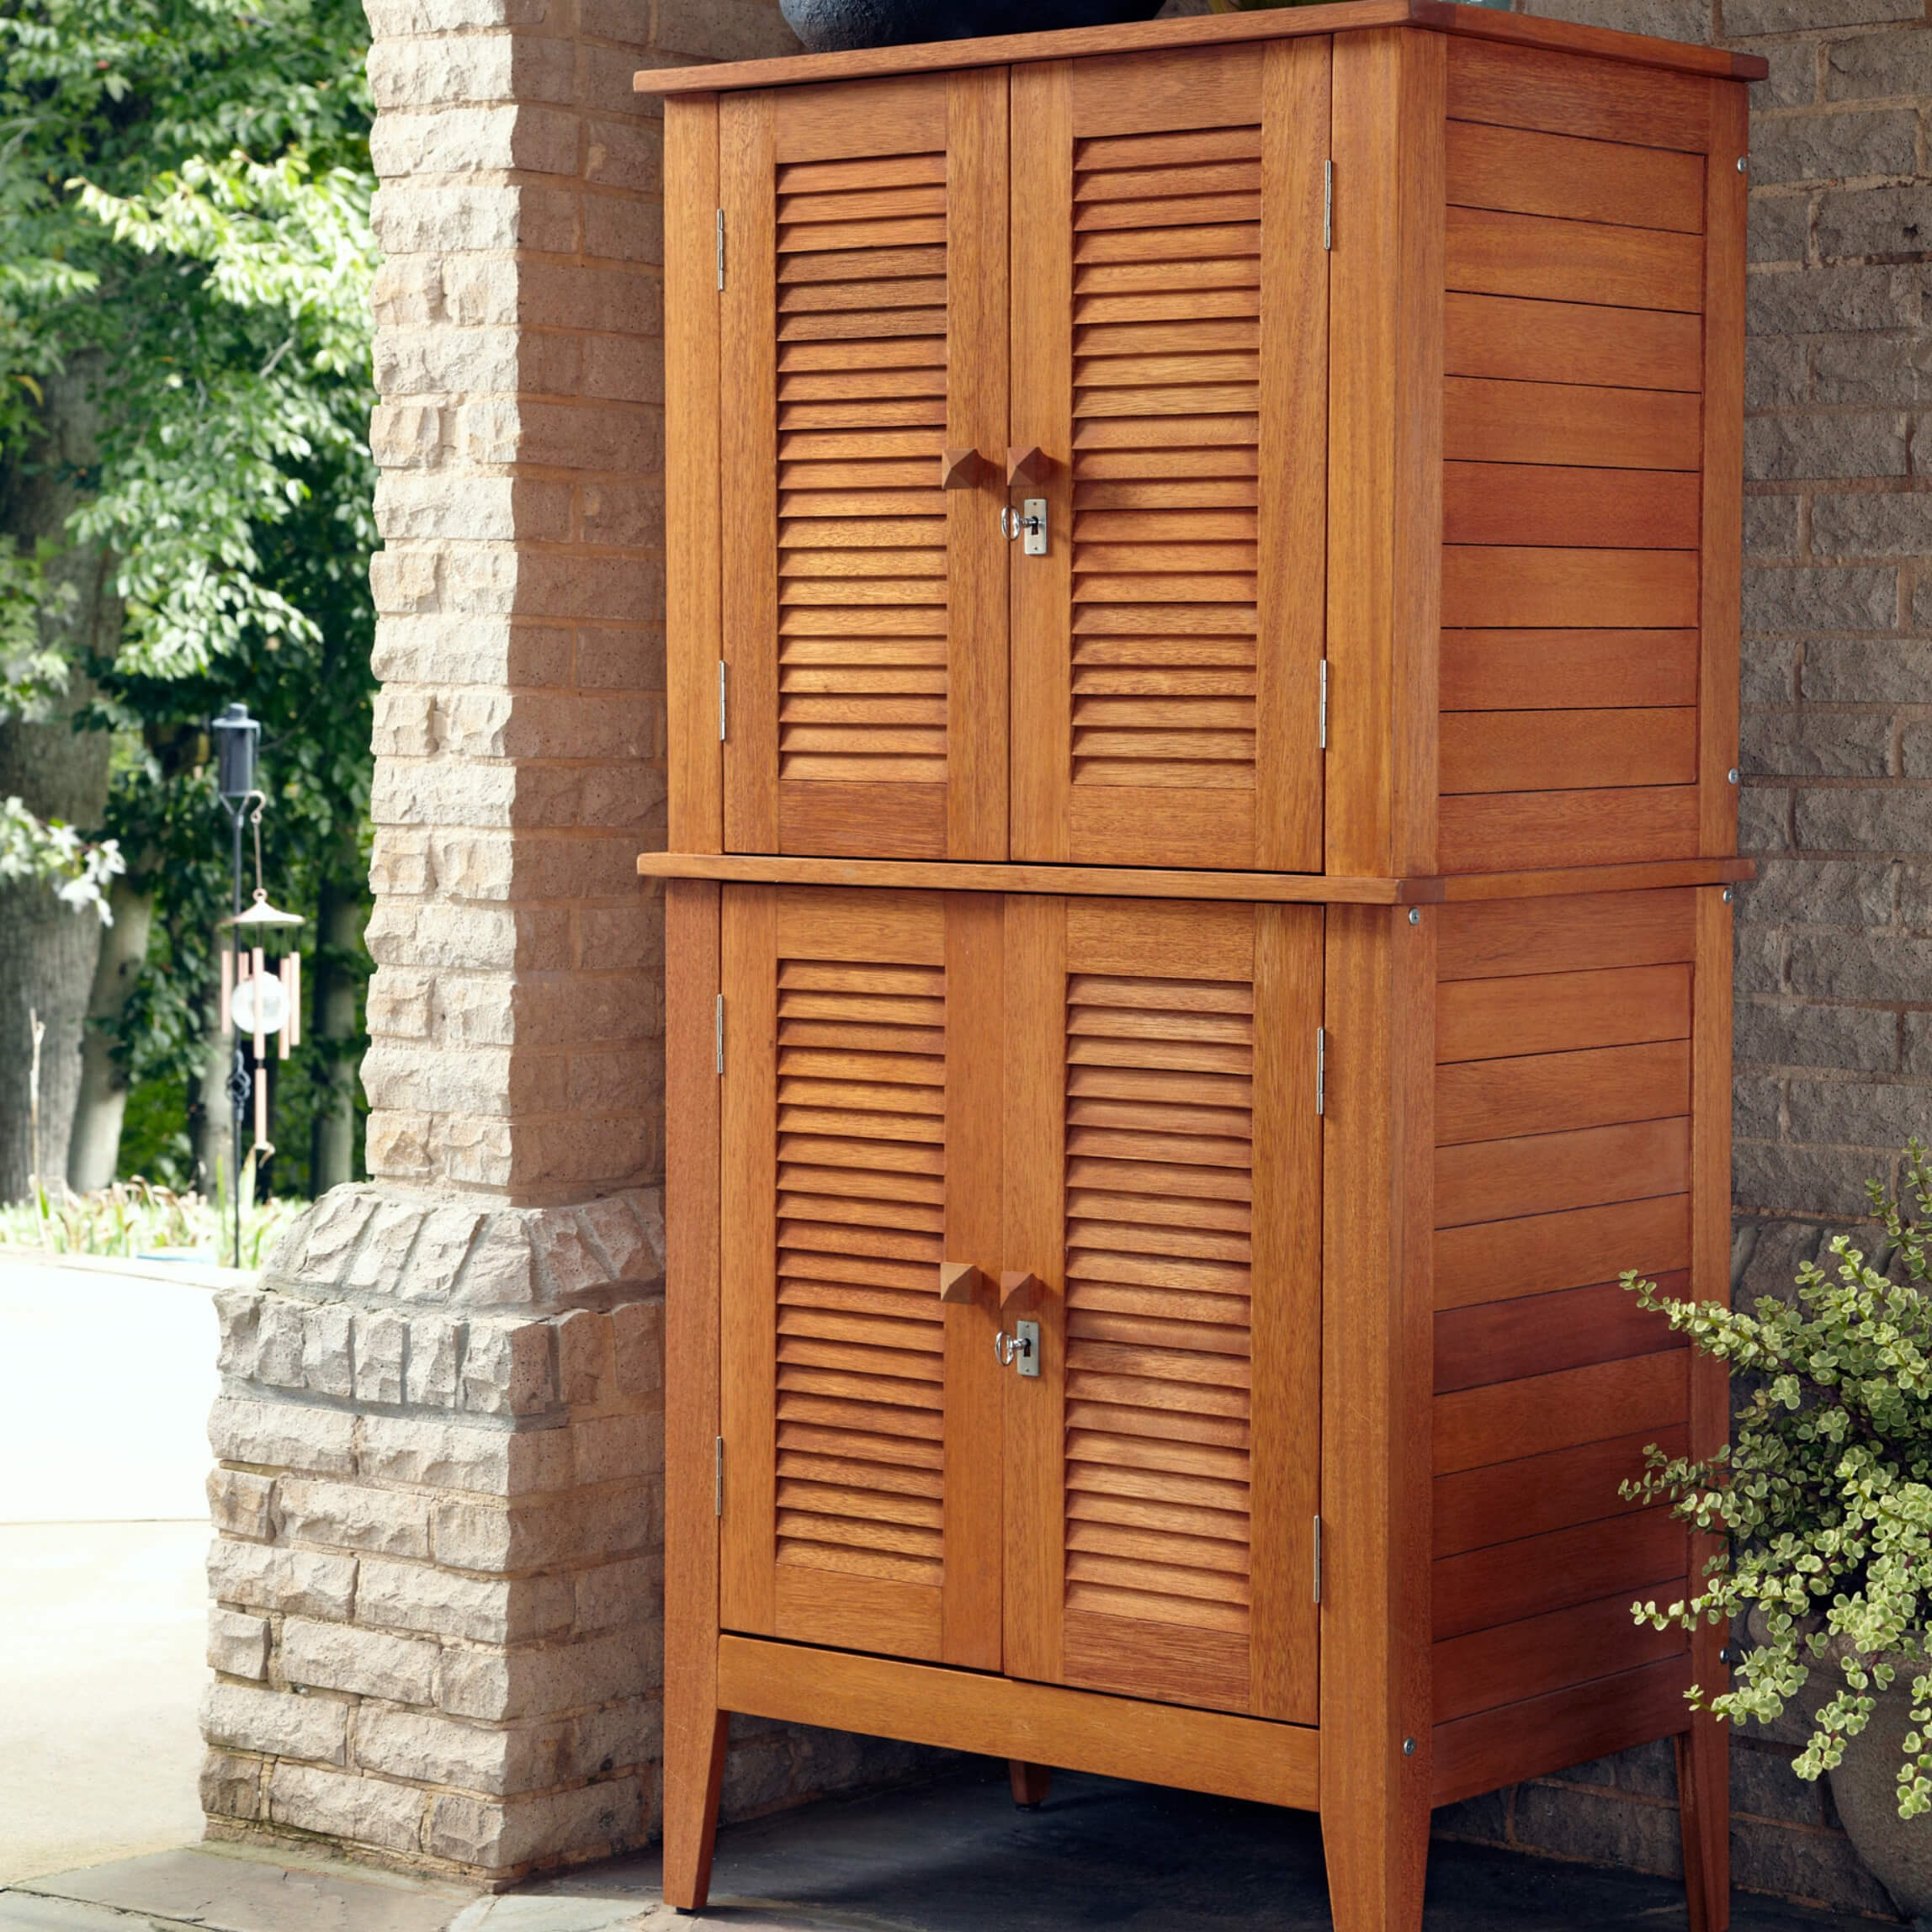 Top 10 Types of Outdoor Deck Storage Boxes This beautiful and durable four door storage cabinet is crafted out of  eco friendly